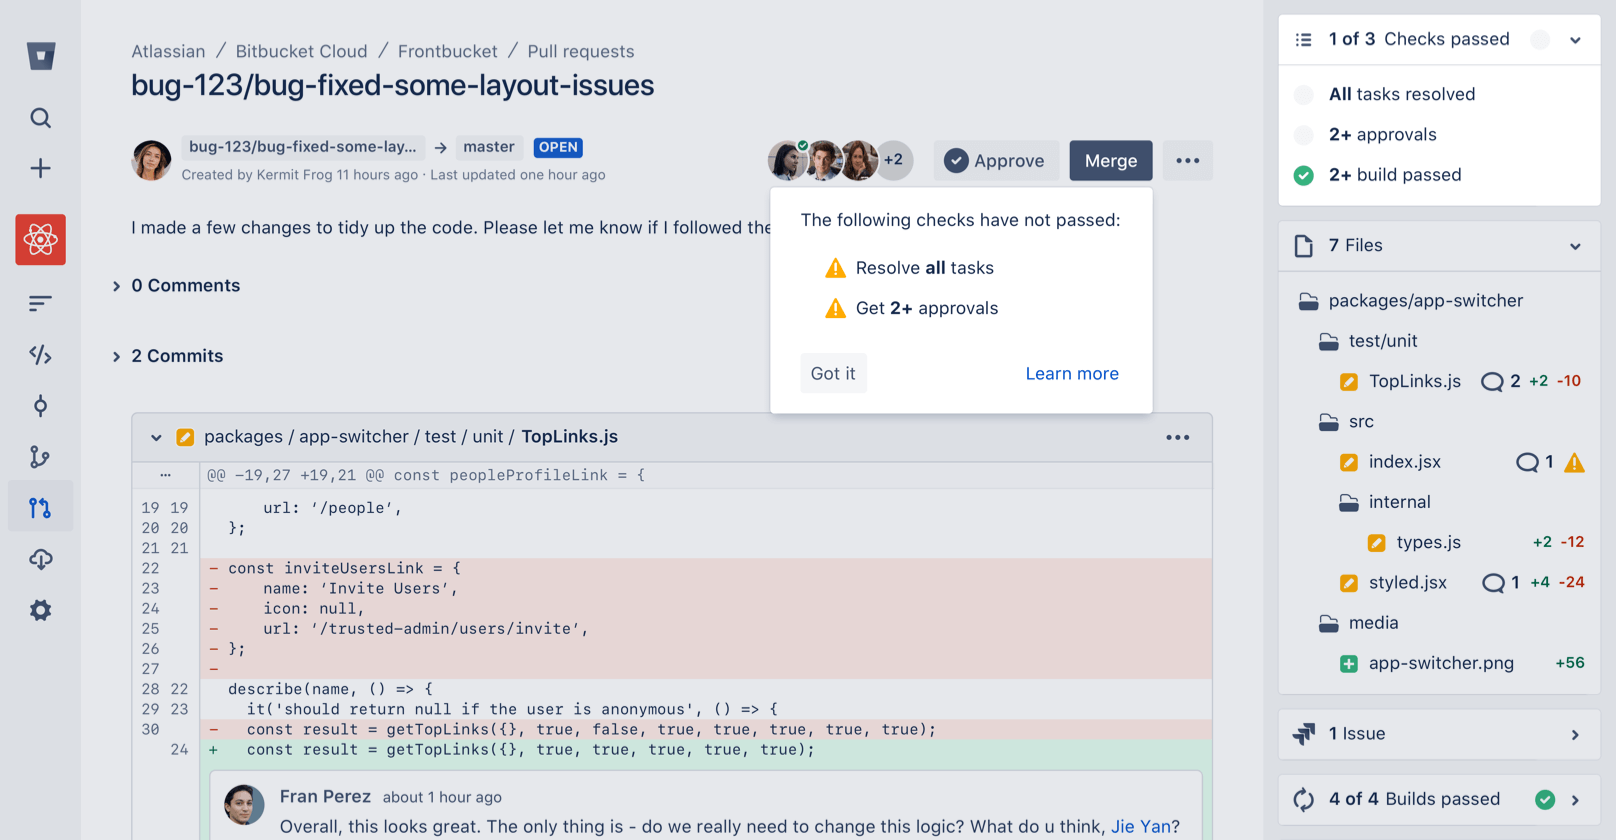 Enforced merge checks on Bitbucket